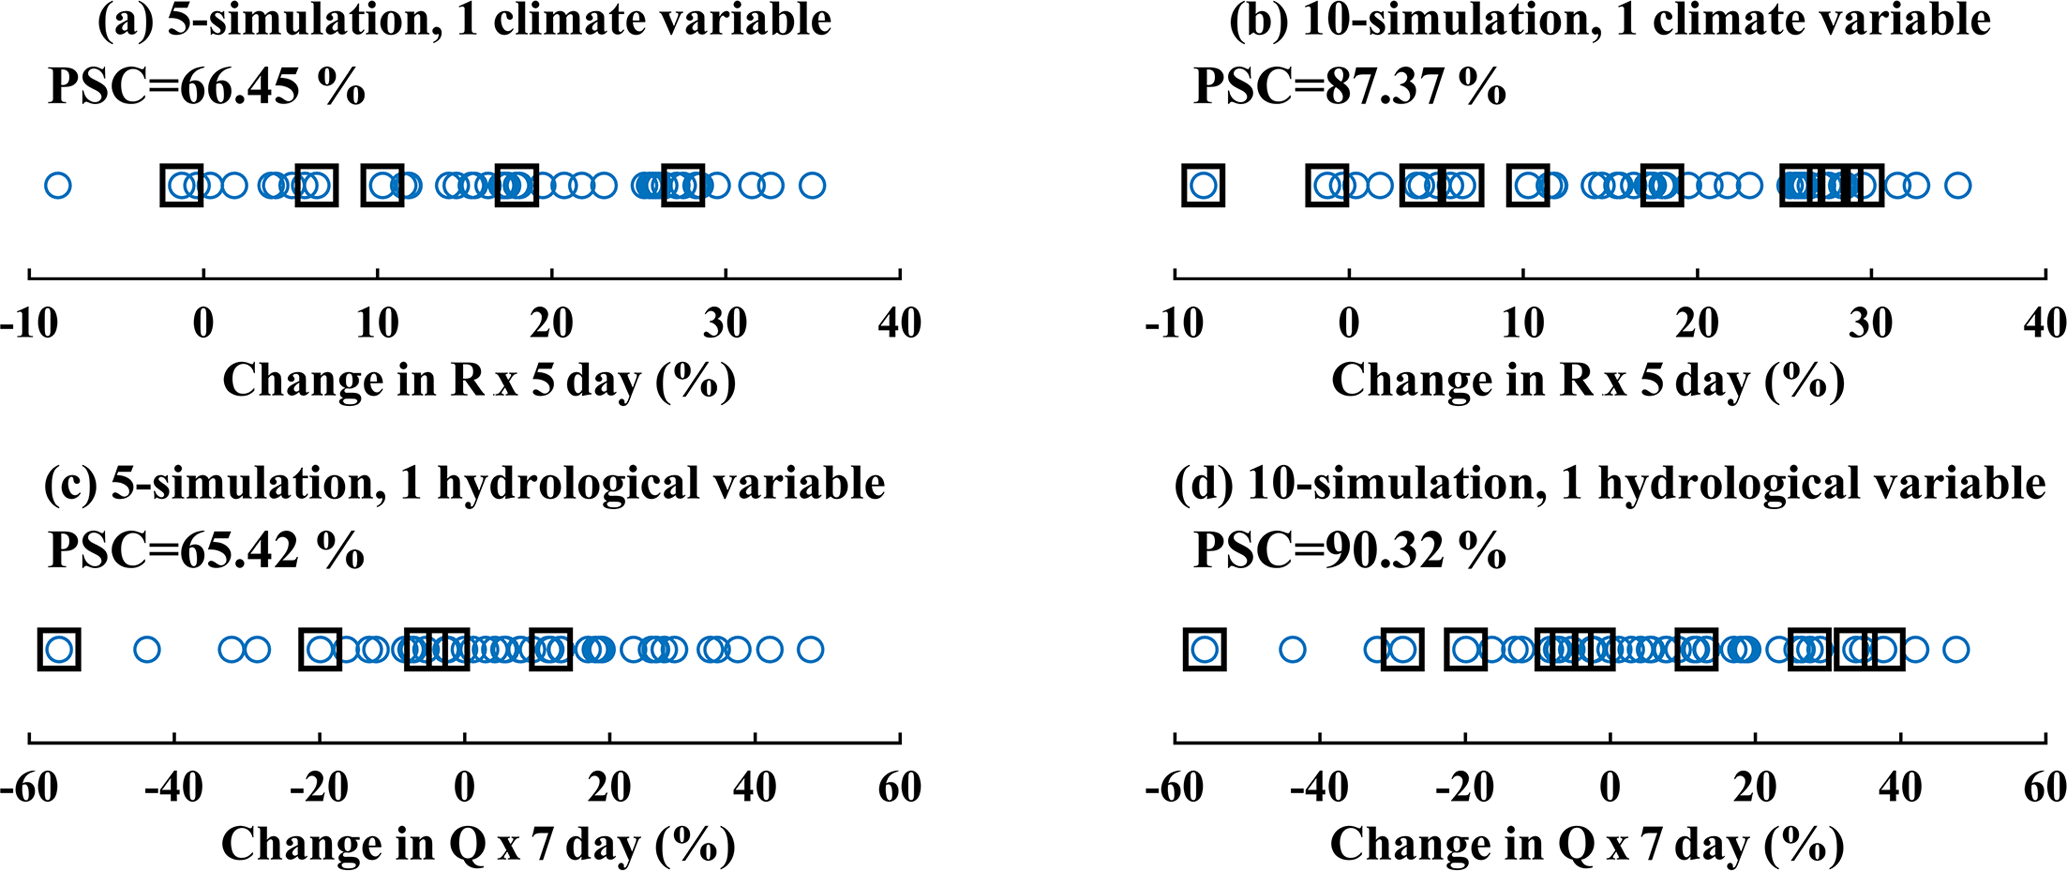 HESS - Transferability of climate simulation uncertainty to